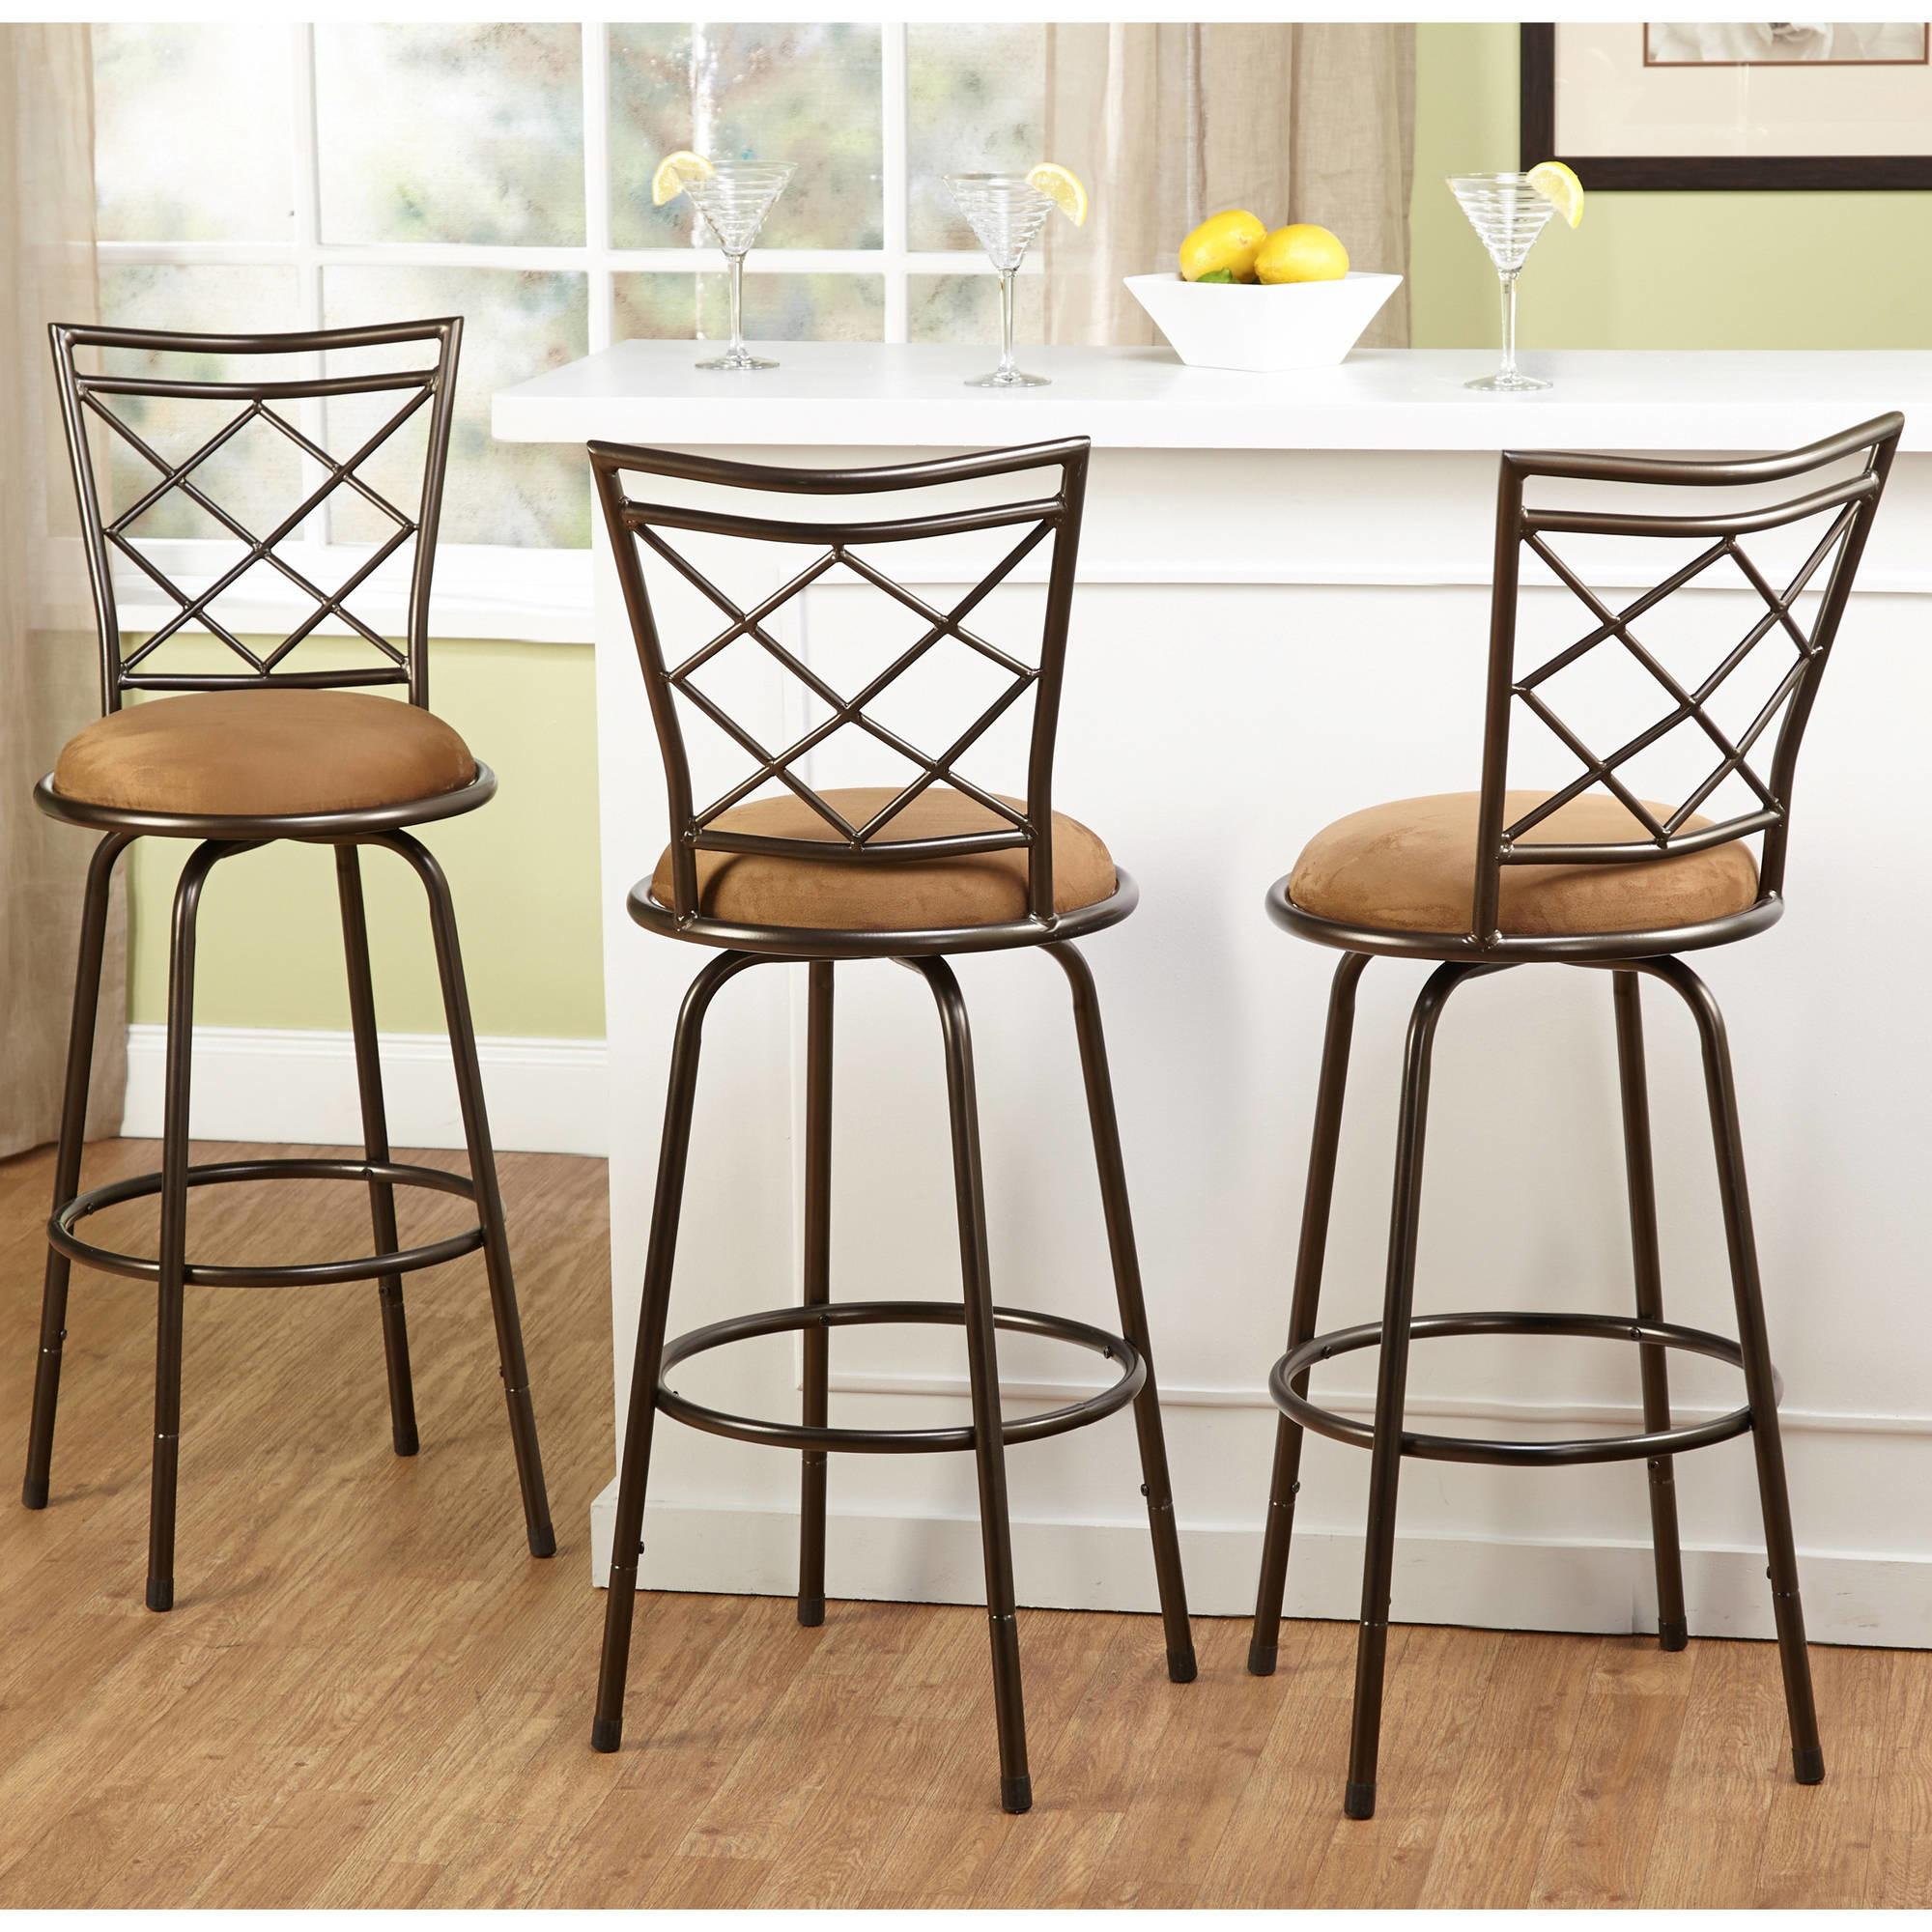 Dining Room Bar Table Metal Counter Stools